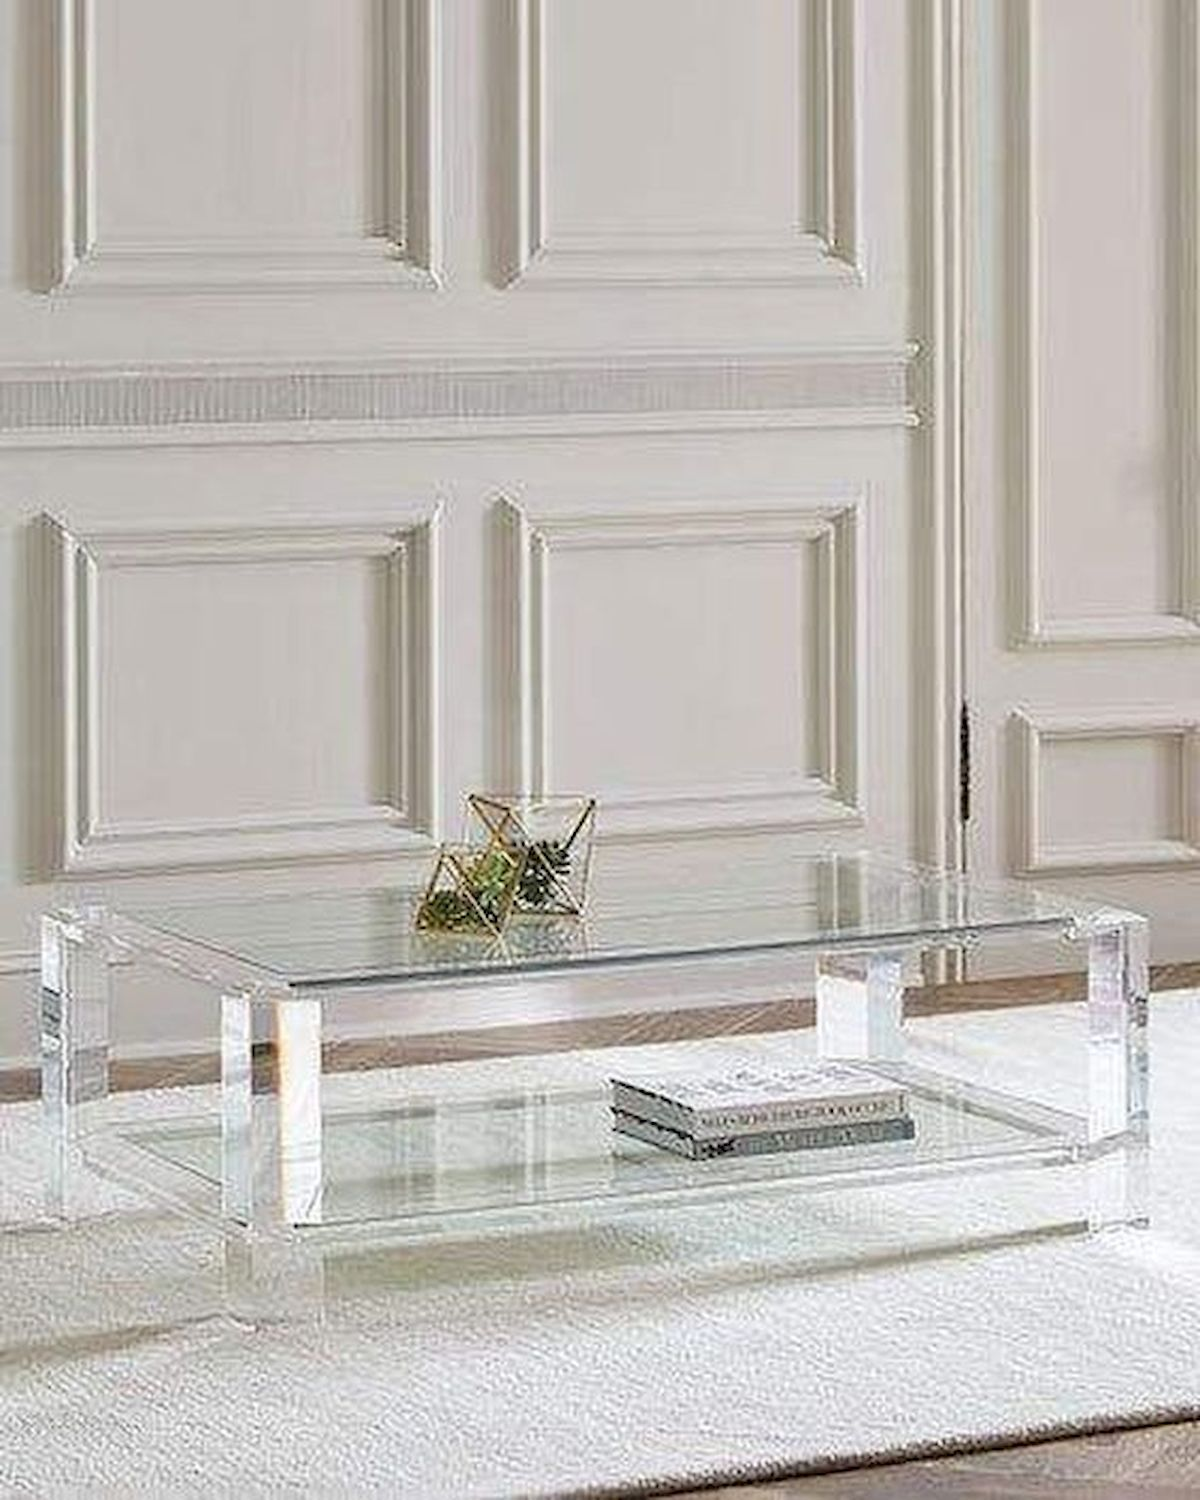 40 Awesome Modern Glass Coffee Table Design Ideas For Your Living Room (38)